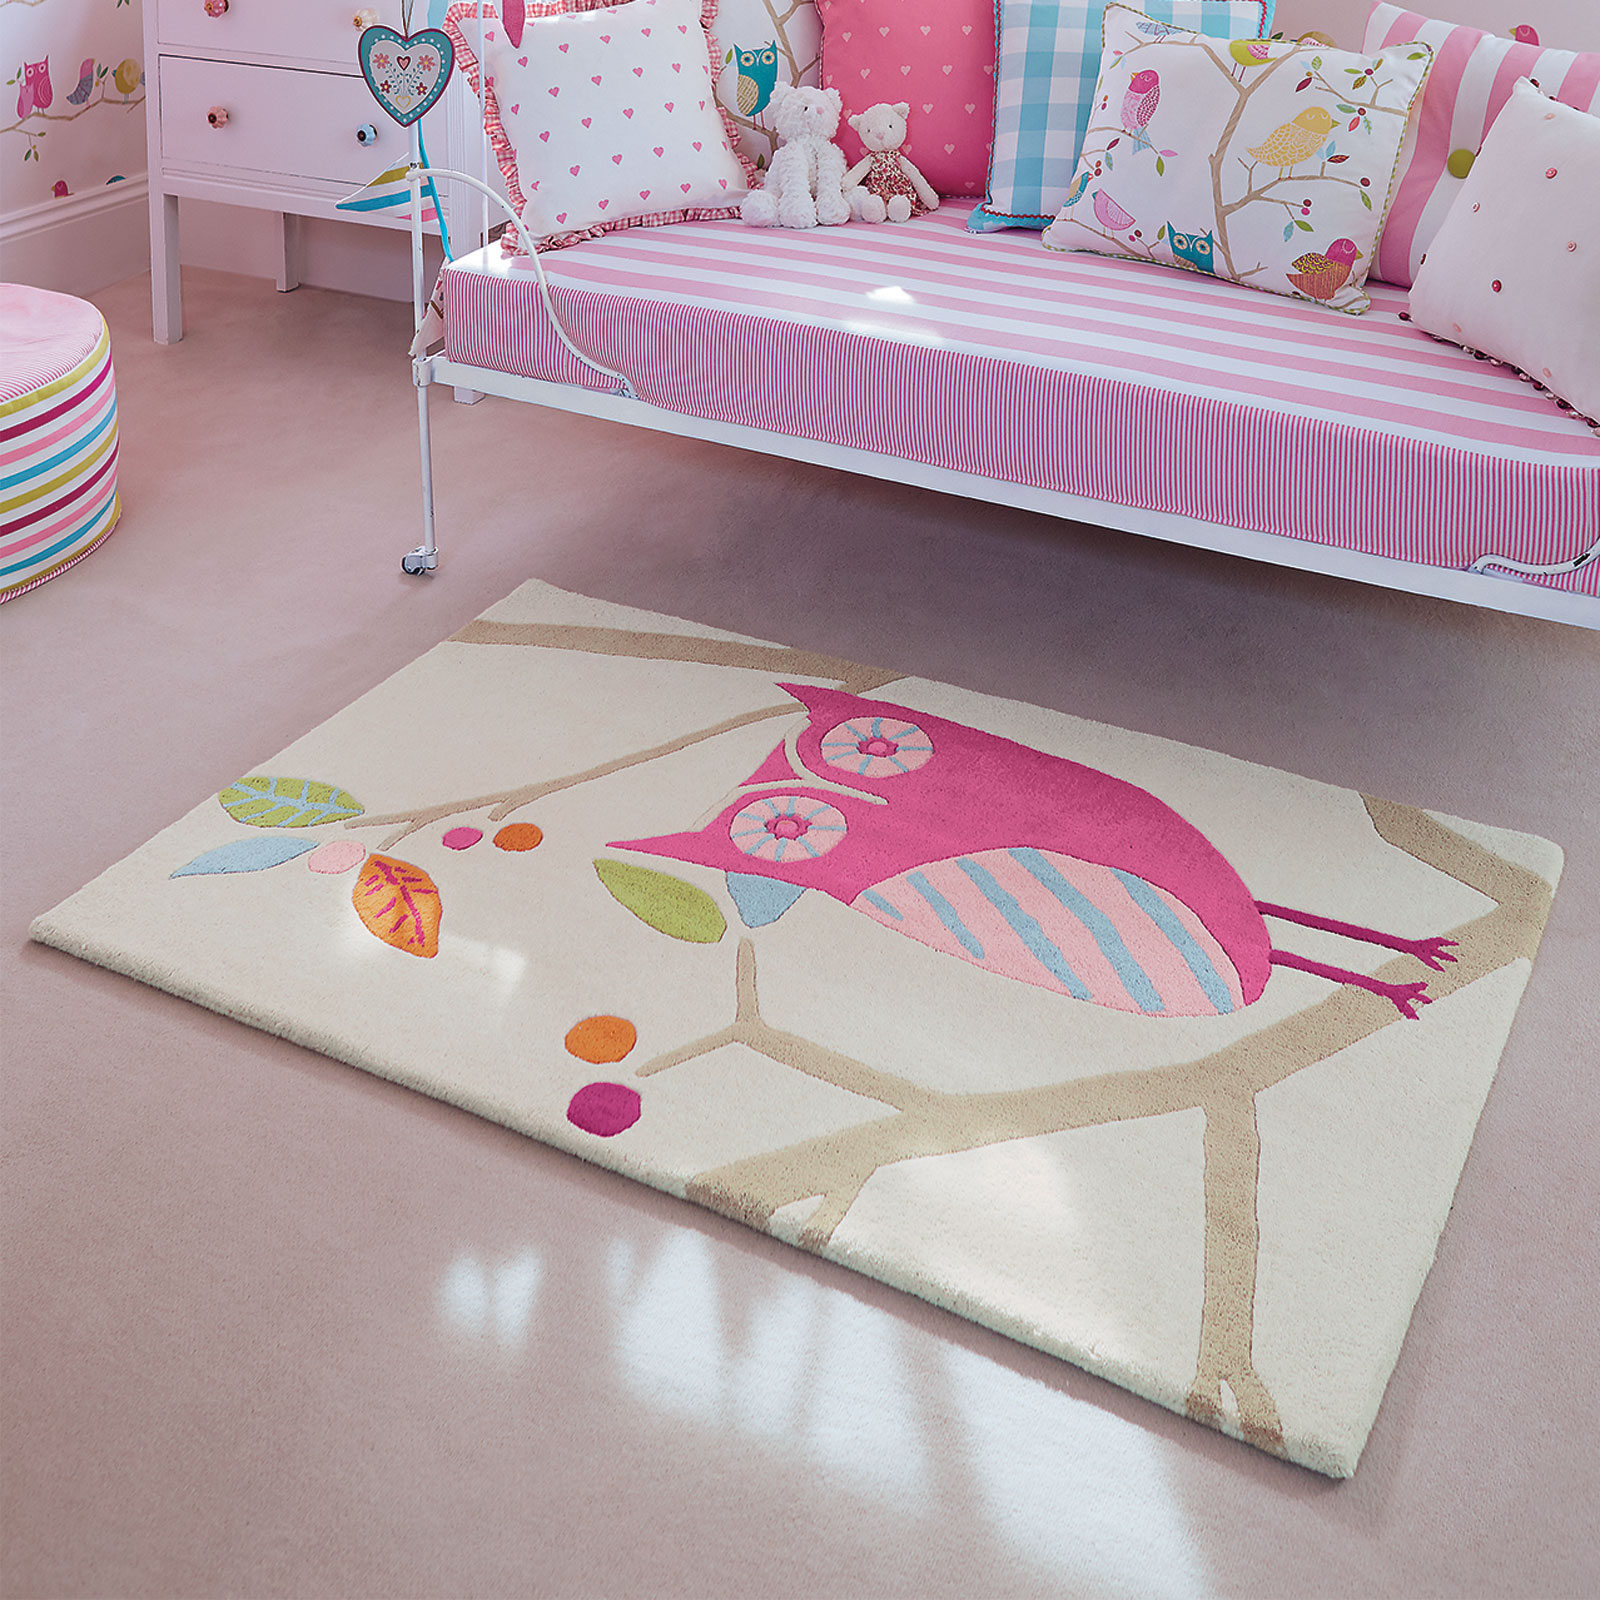 What A Hoot Rugs 42202 Candy by Harlequin Kids